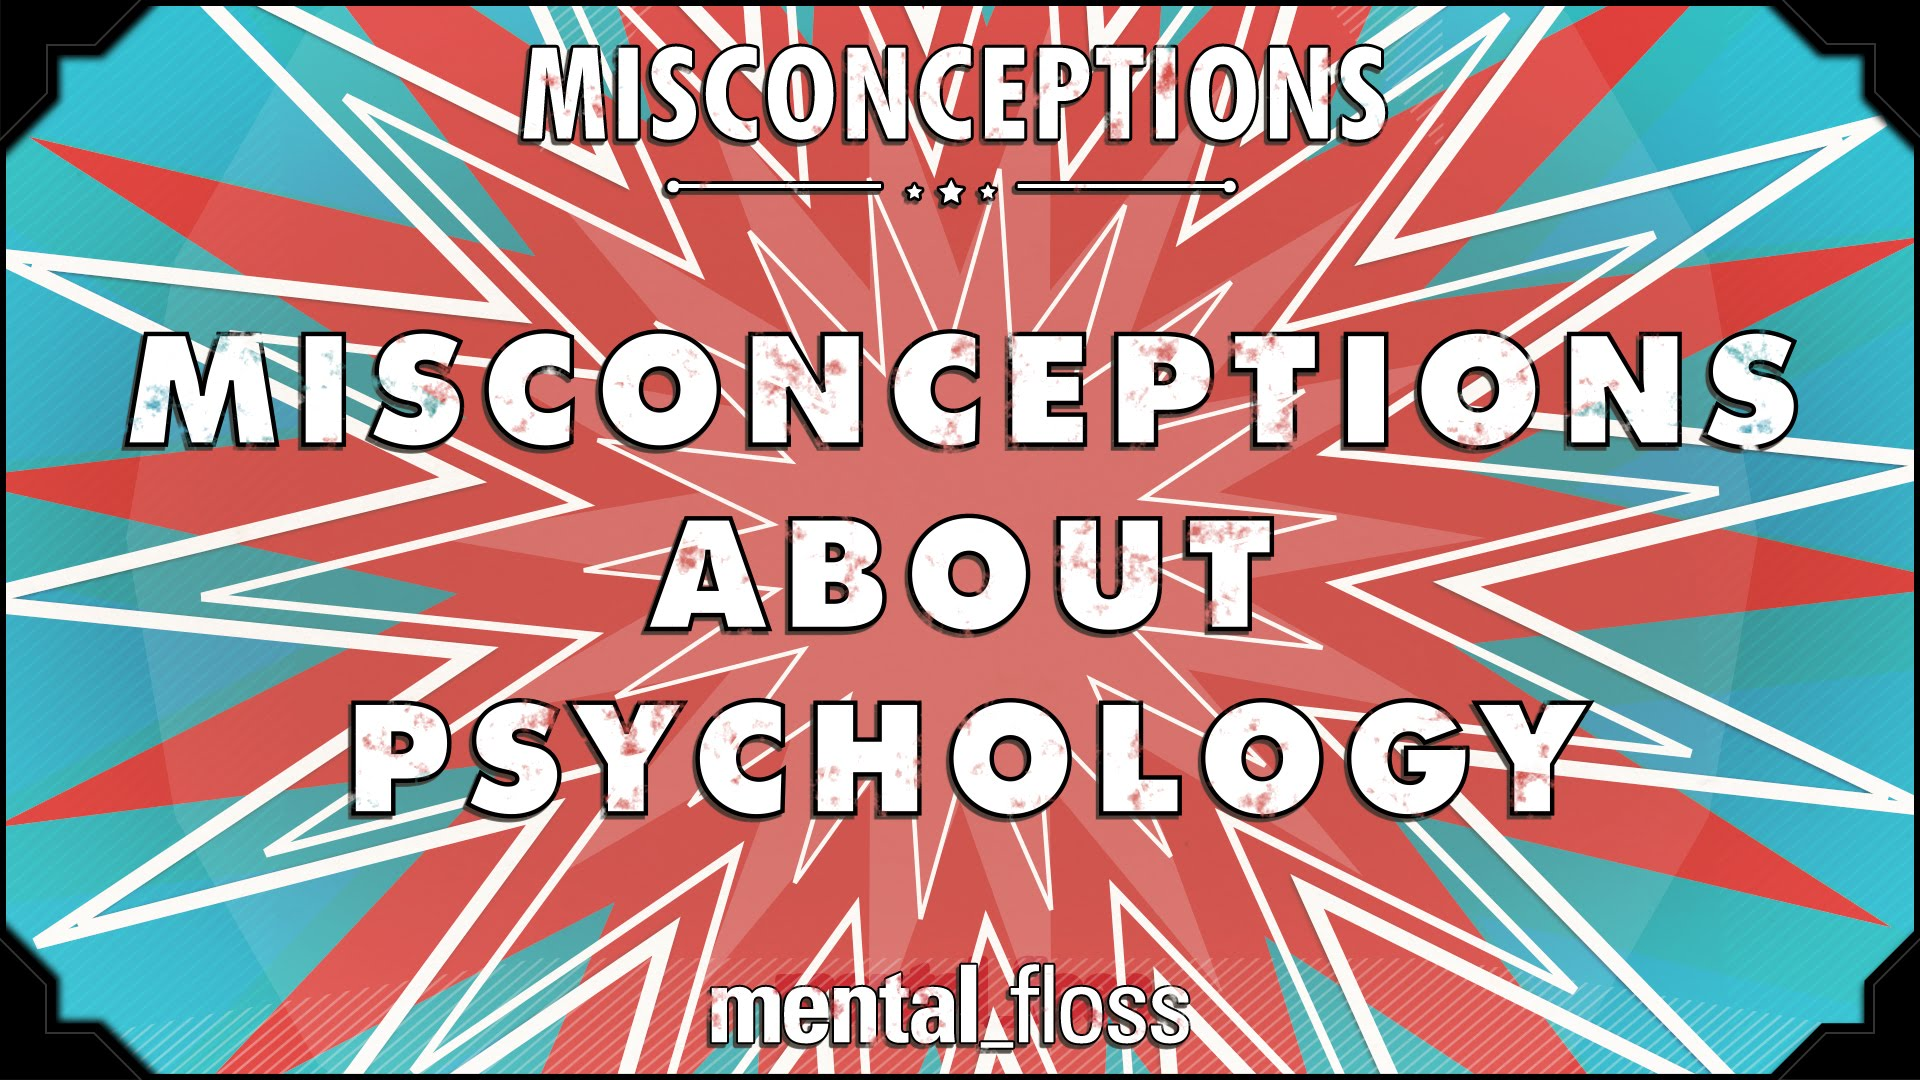 Common Misconceptions About Psychology Are Examined Explained And Debunked